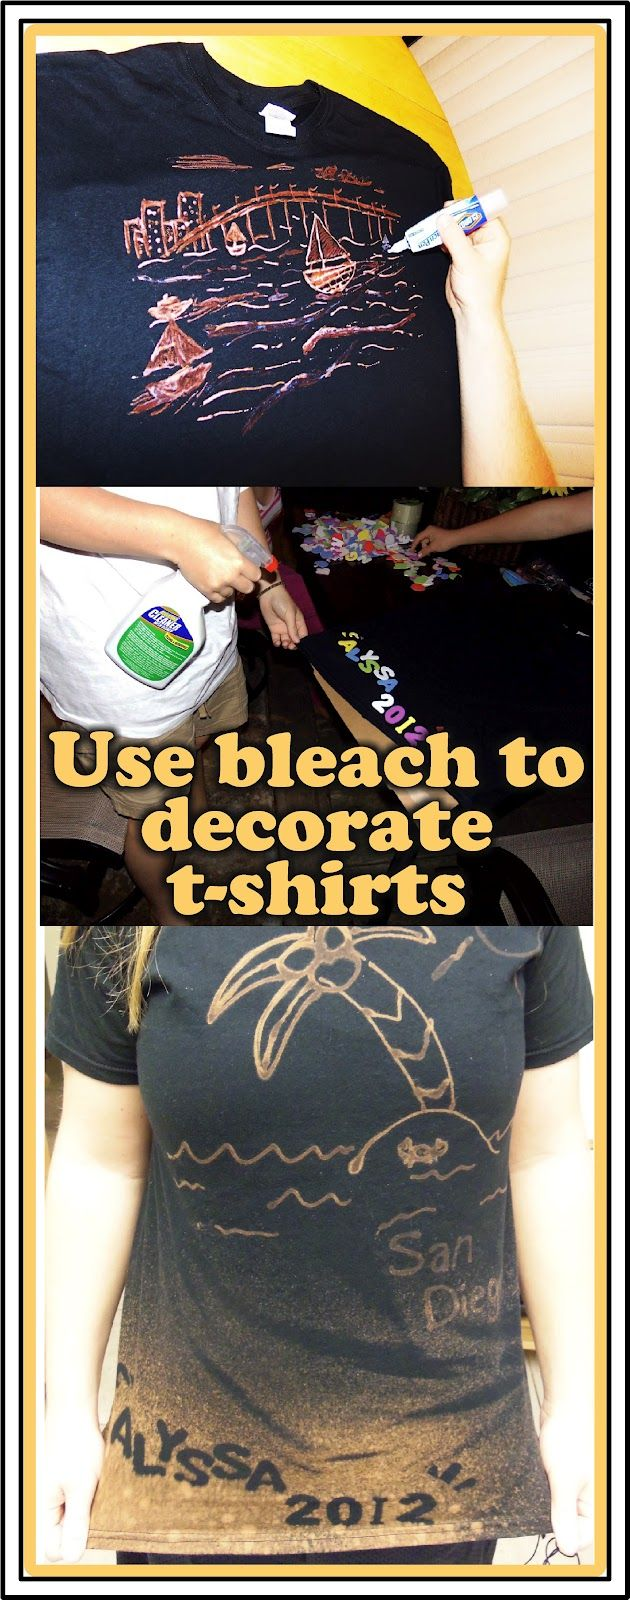 Decorating t-shirts with bleach. This was a fun family project. Everyone came up with their own unique design.